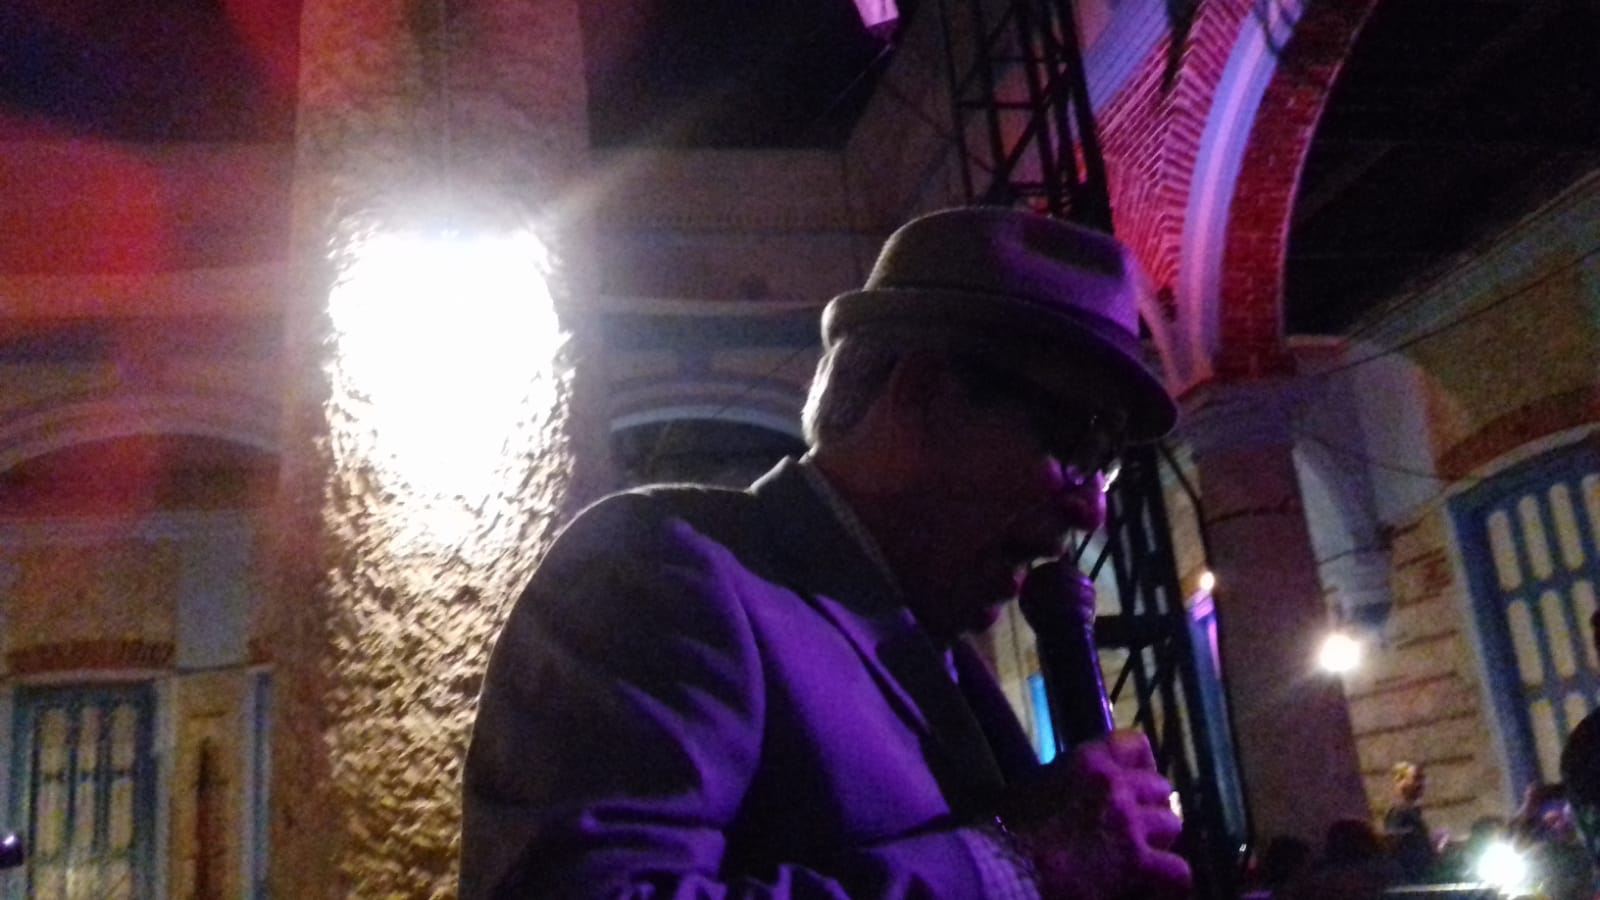 From the heart... a singer takes the microphone at the Buena Vista Social Club, Havana, Cuba.